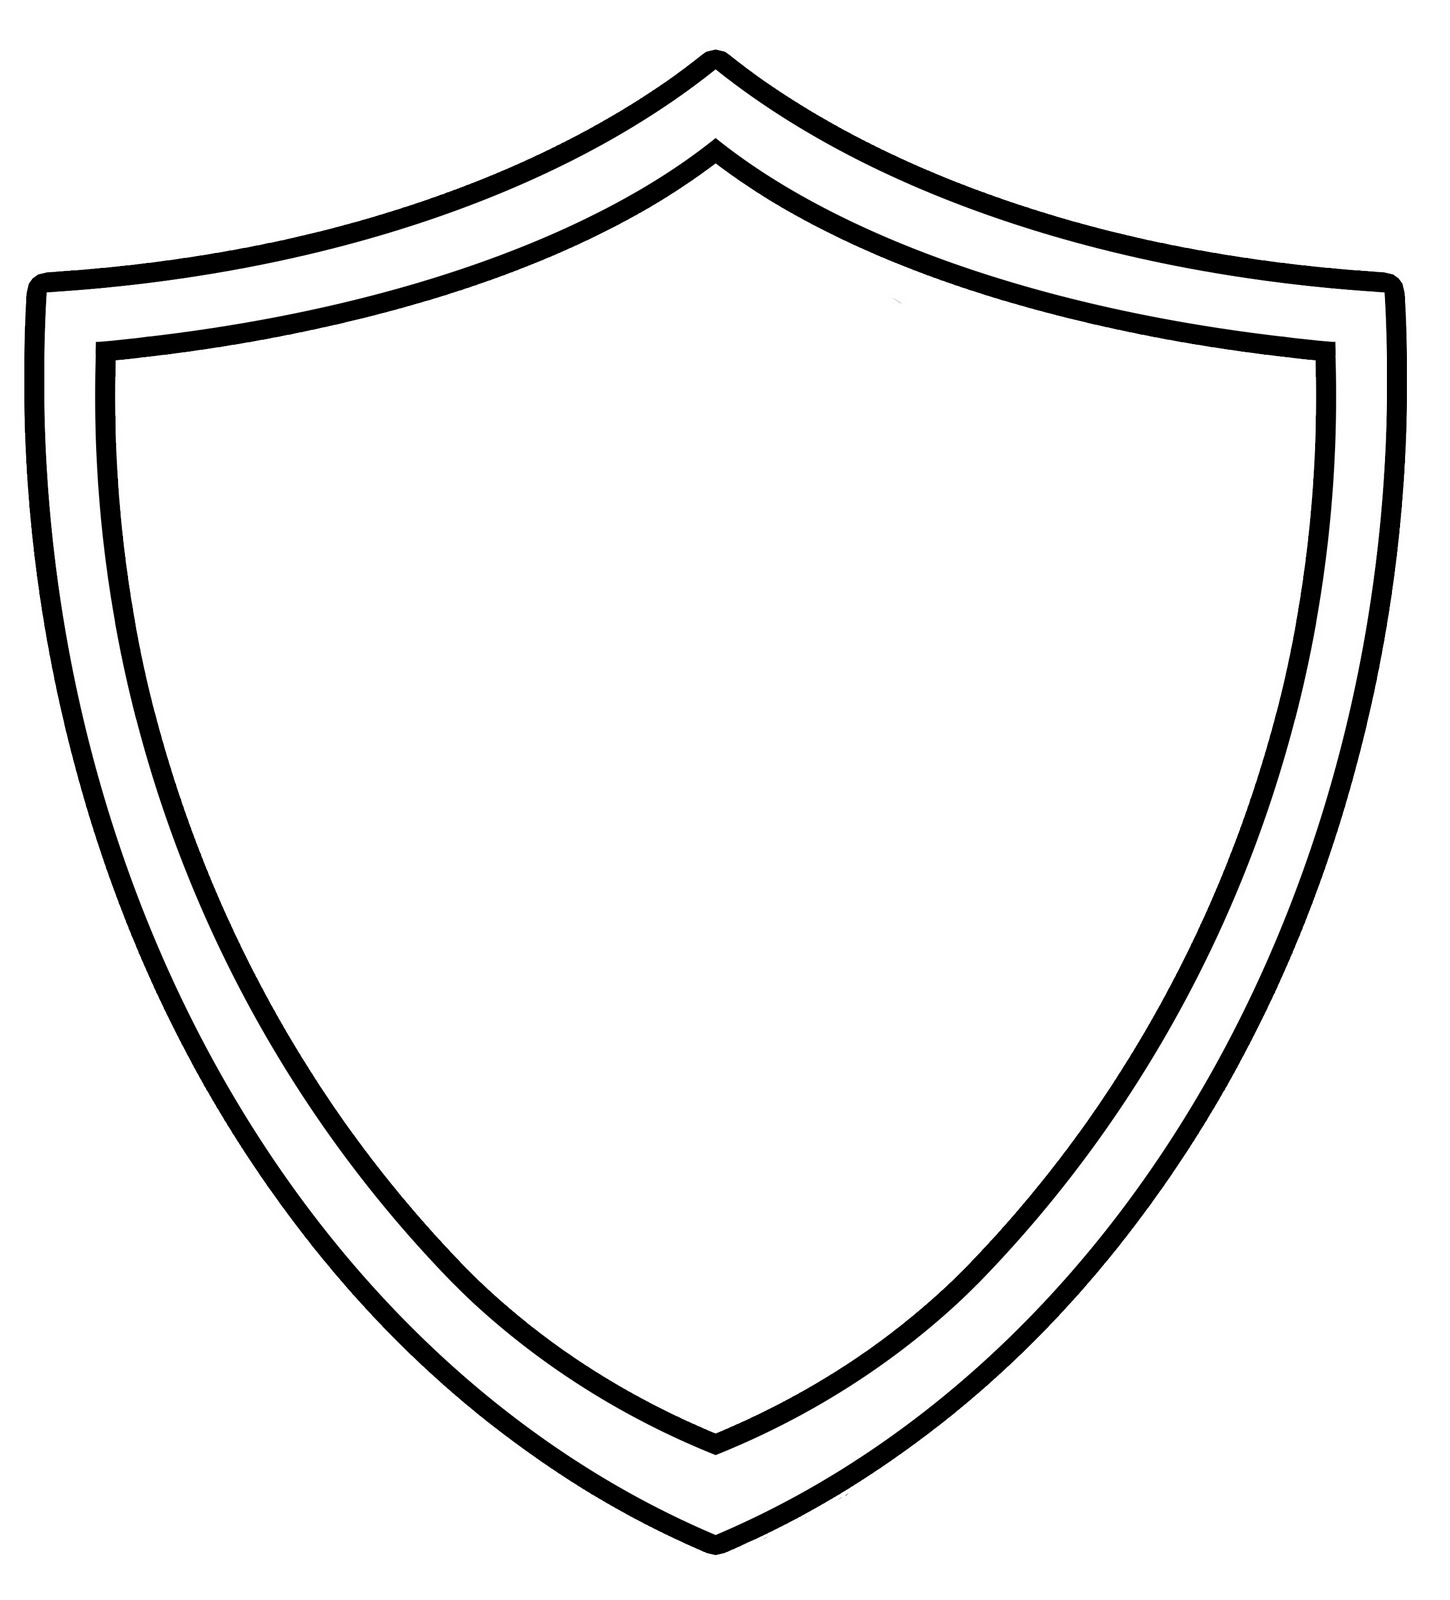 ctr shield coloring page - yw in excellence